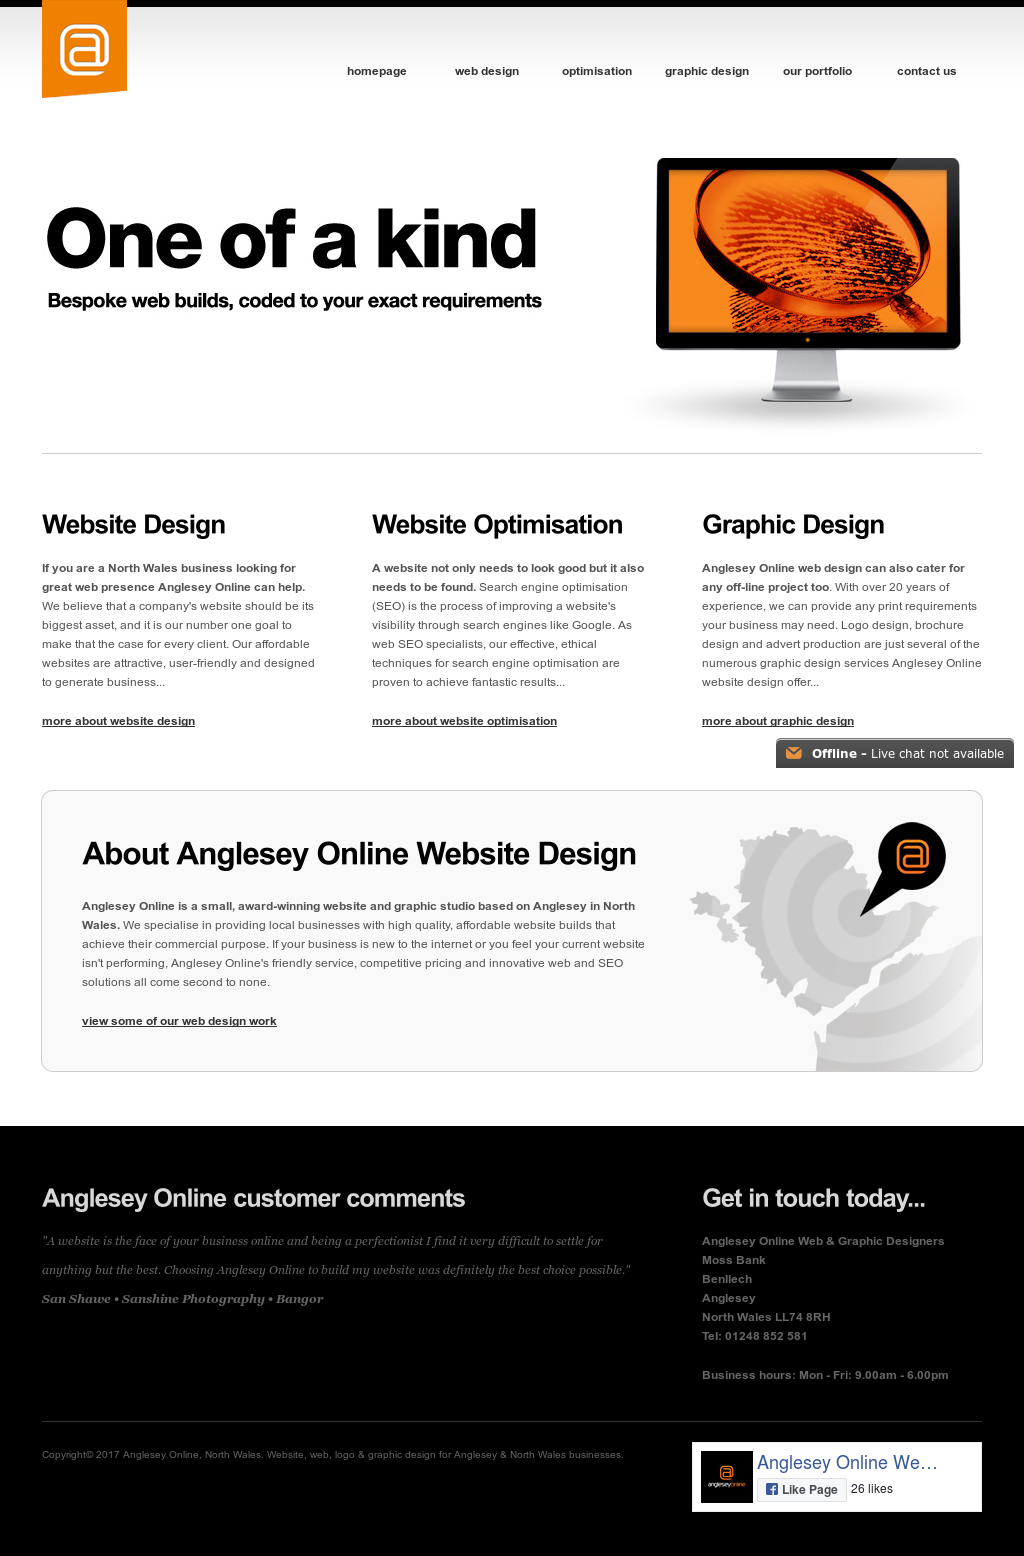 Anglesey Online North Wales Website Web Logo Graphic Design For Anglesey North Wales Businesses Competitors Revenue And Employees Owler Company Profile